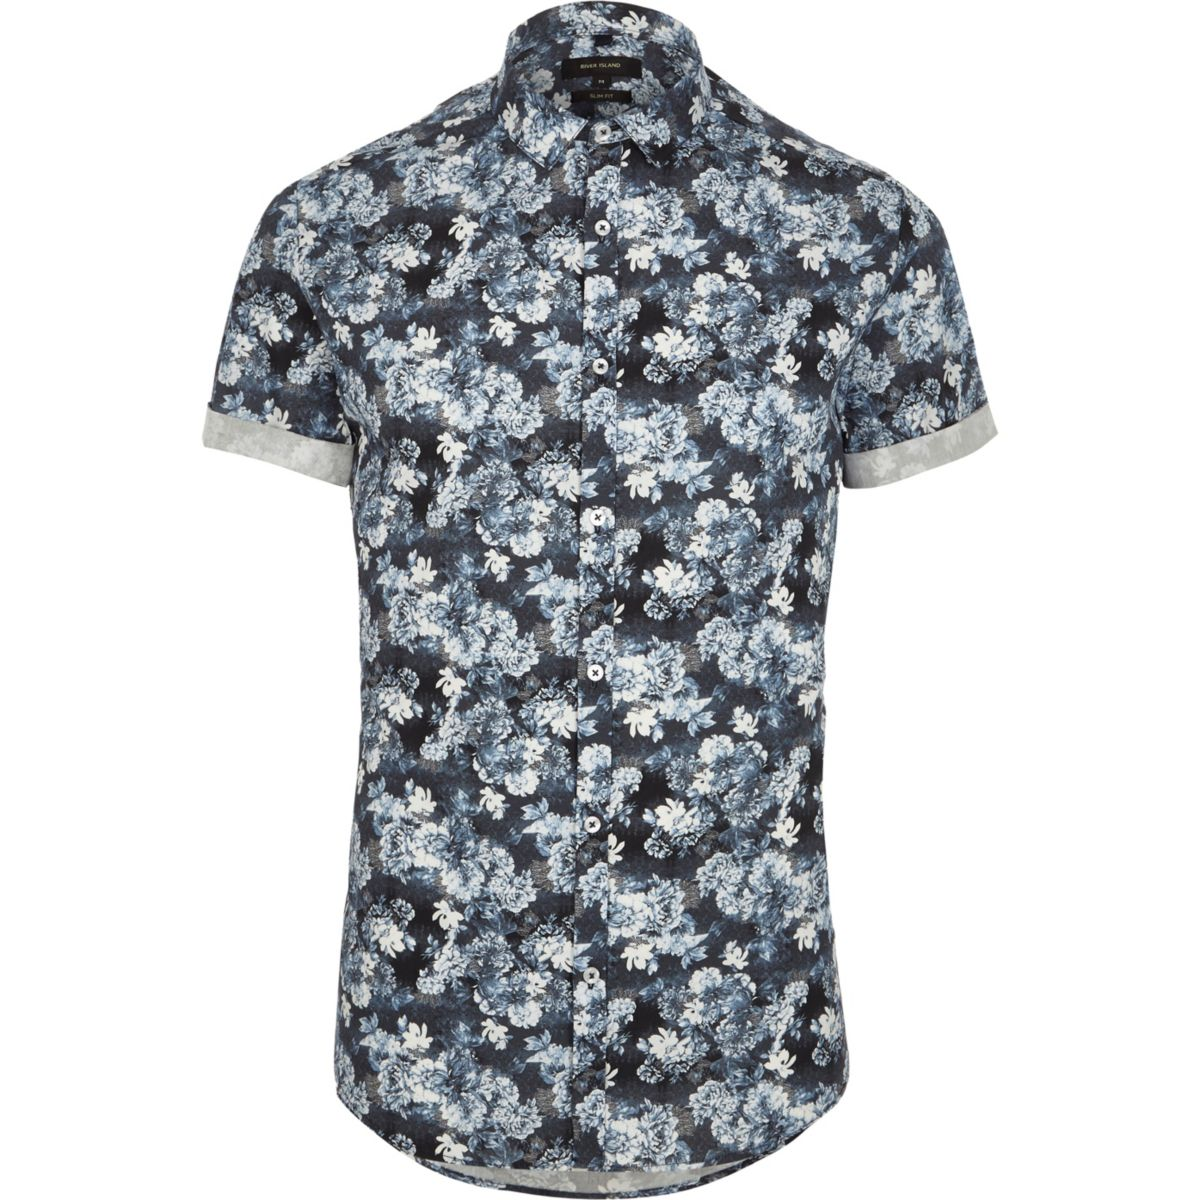 Blue floral print short sleeve slim fit shirt